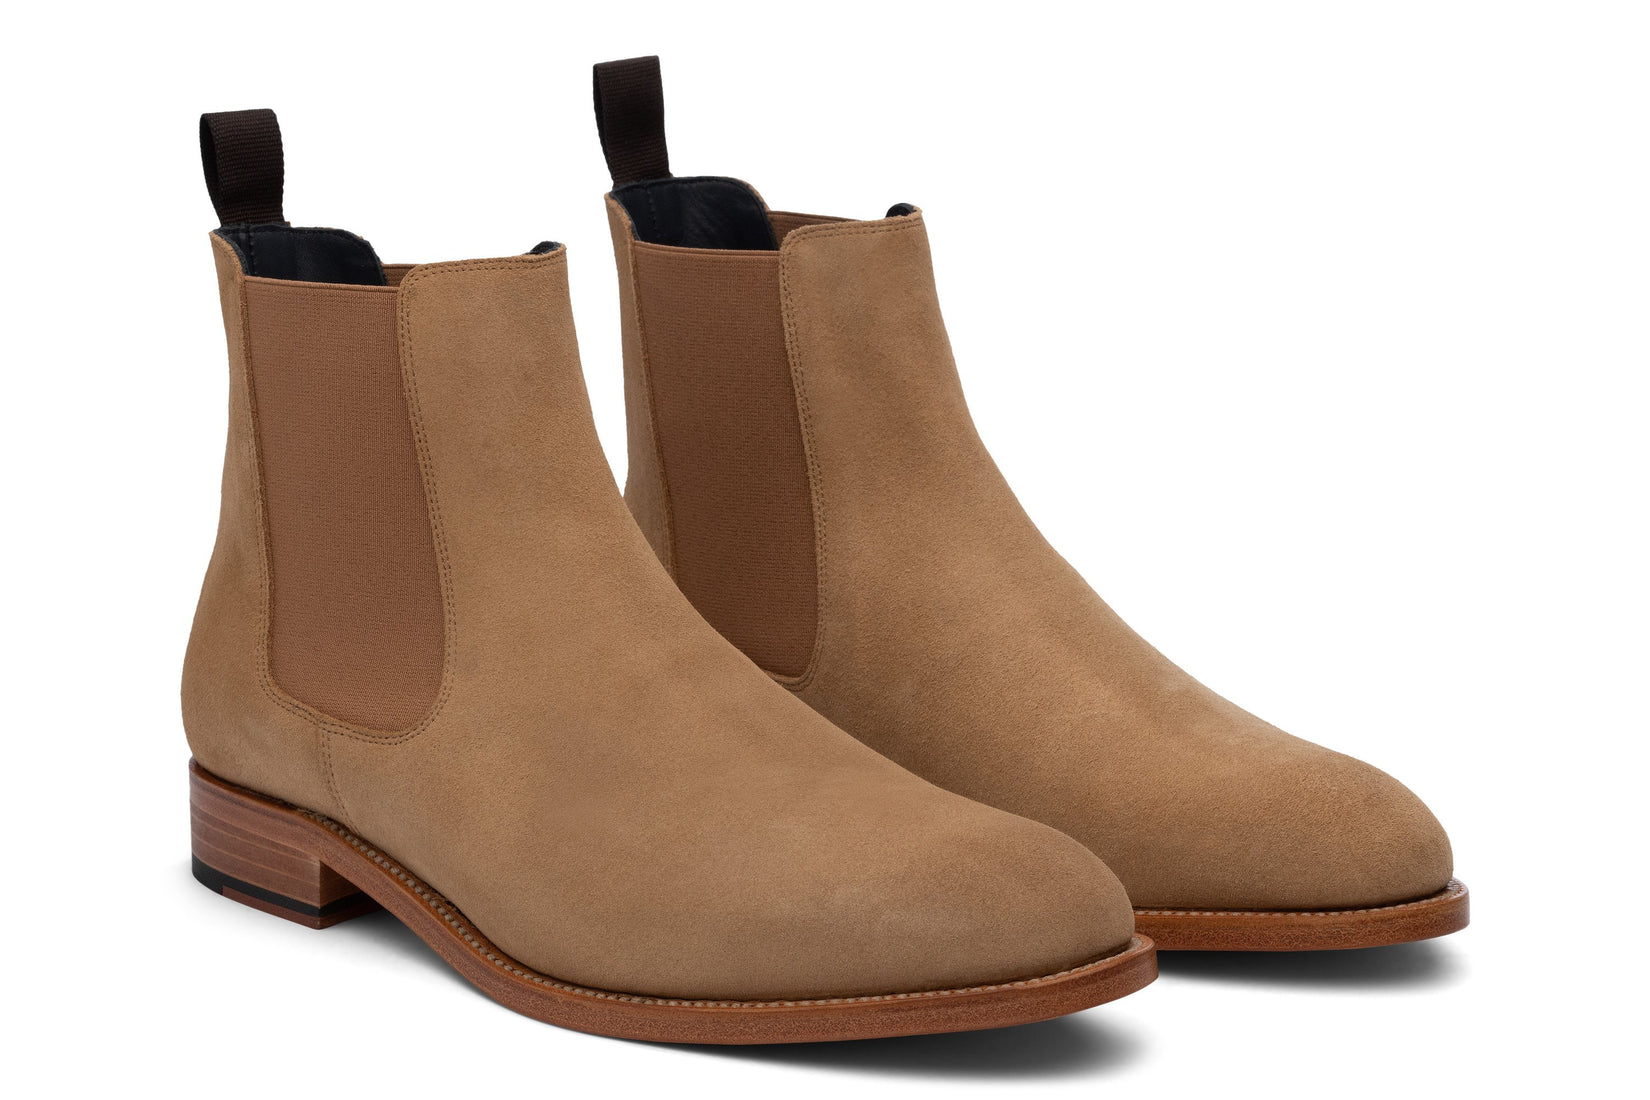 Wednesday Chelsea Boot in Camel